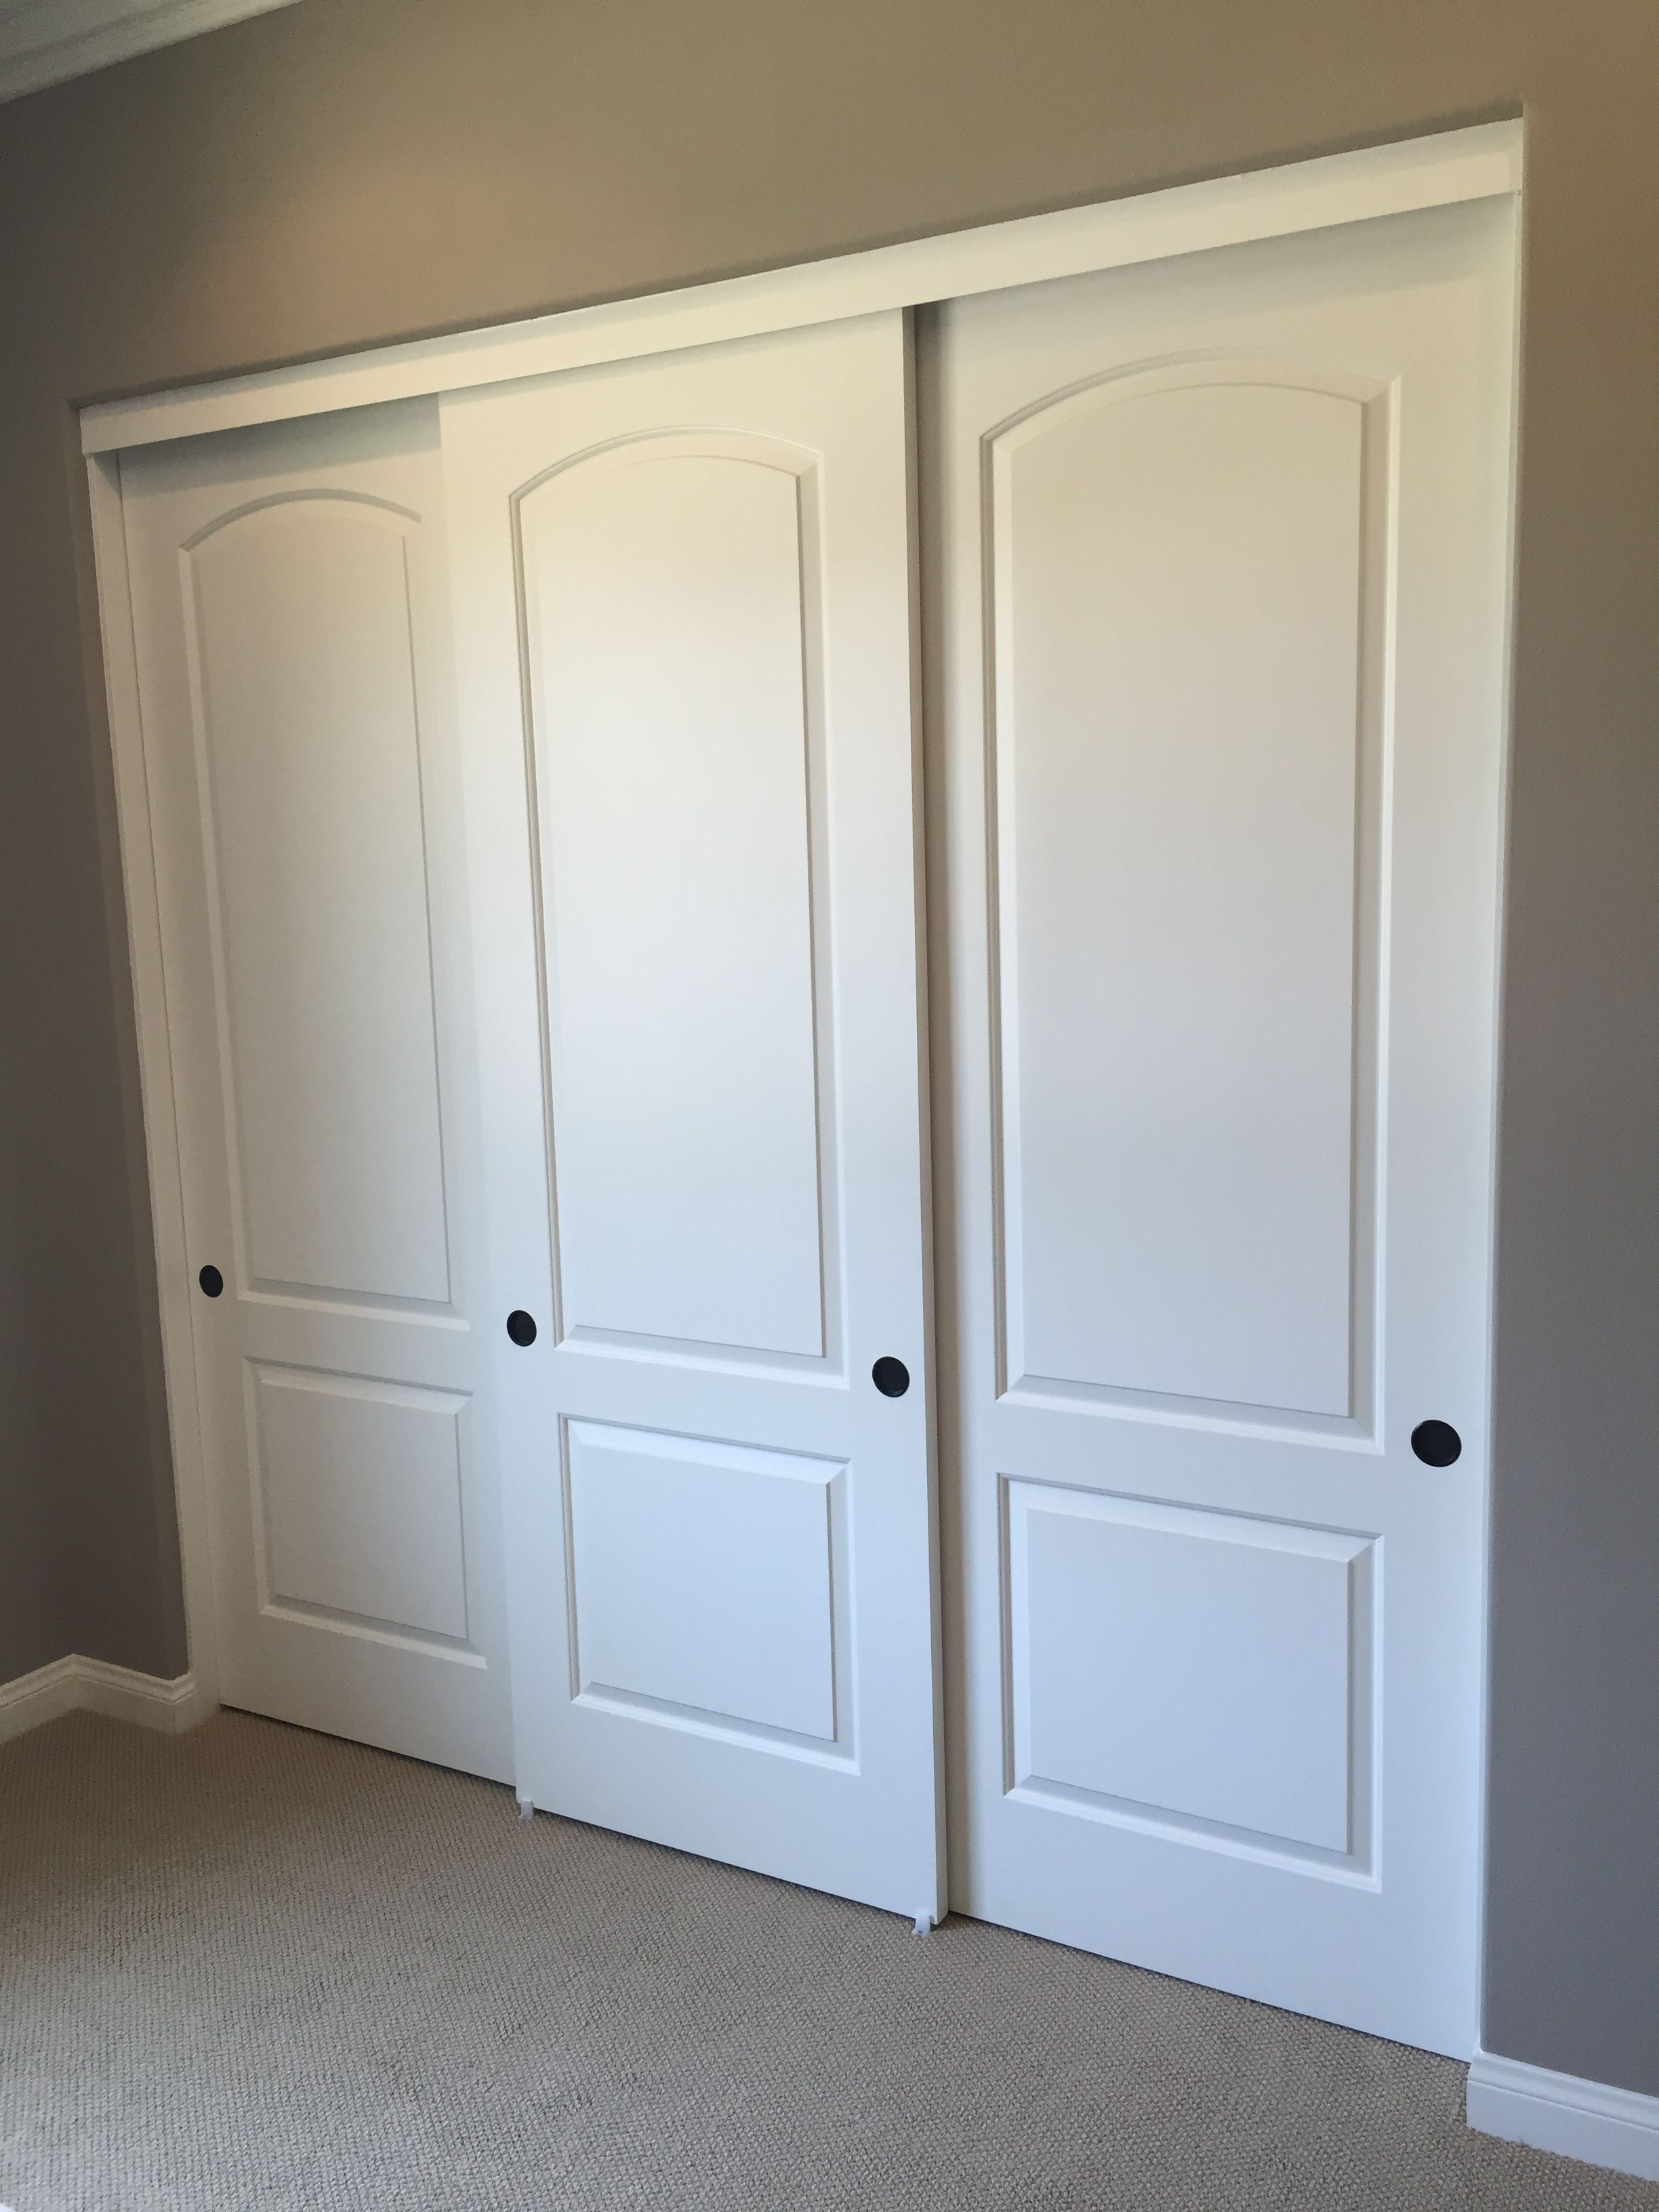 Sliding Bypass Closet Doors Of Southern California Are